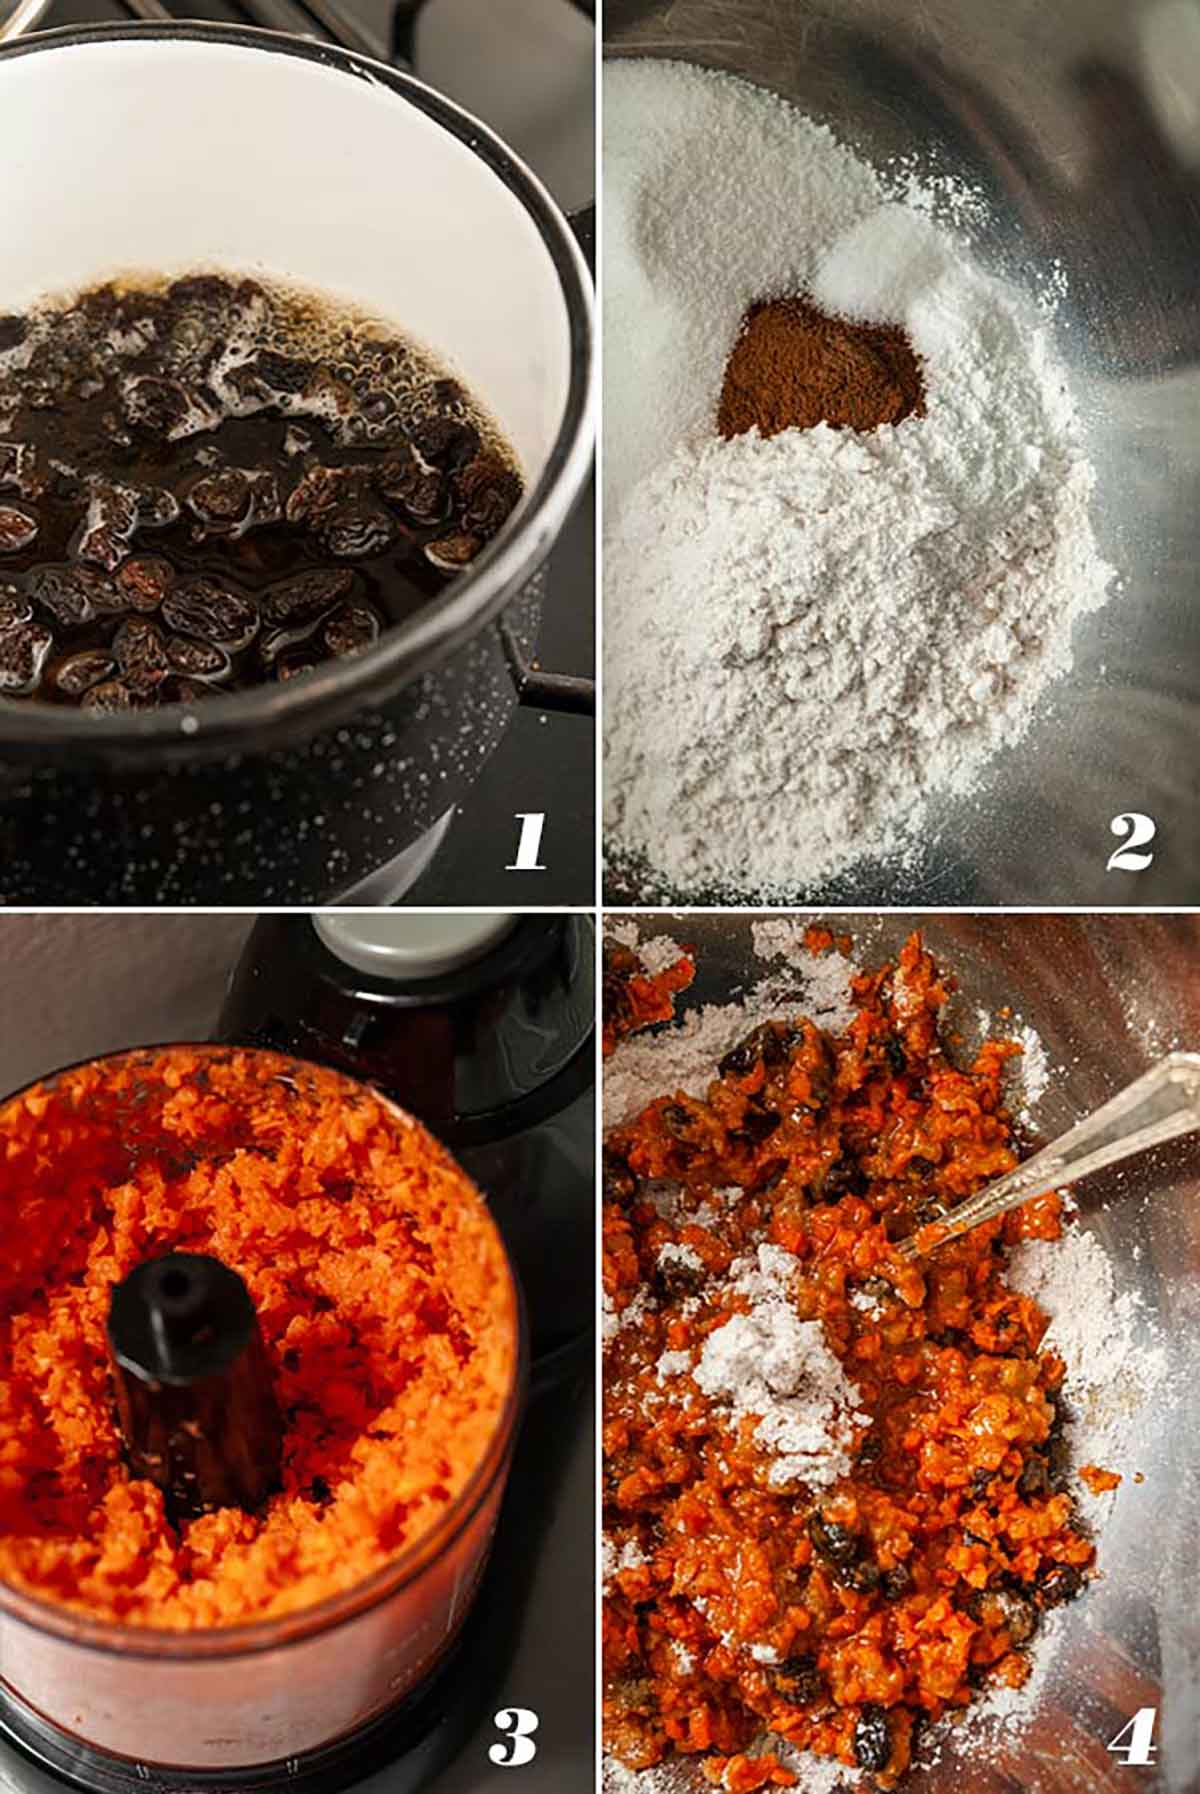 A collage of 4 images showing how to make whisky raisins and mixing carrot batter.